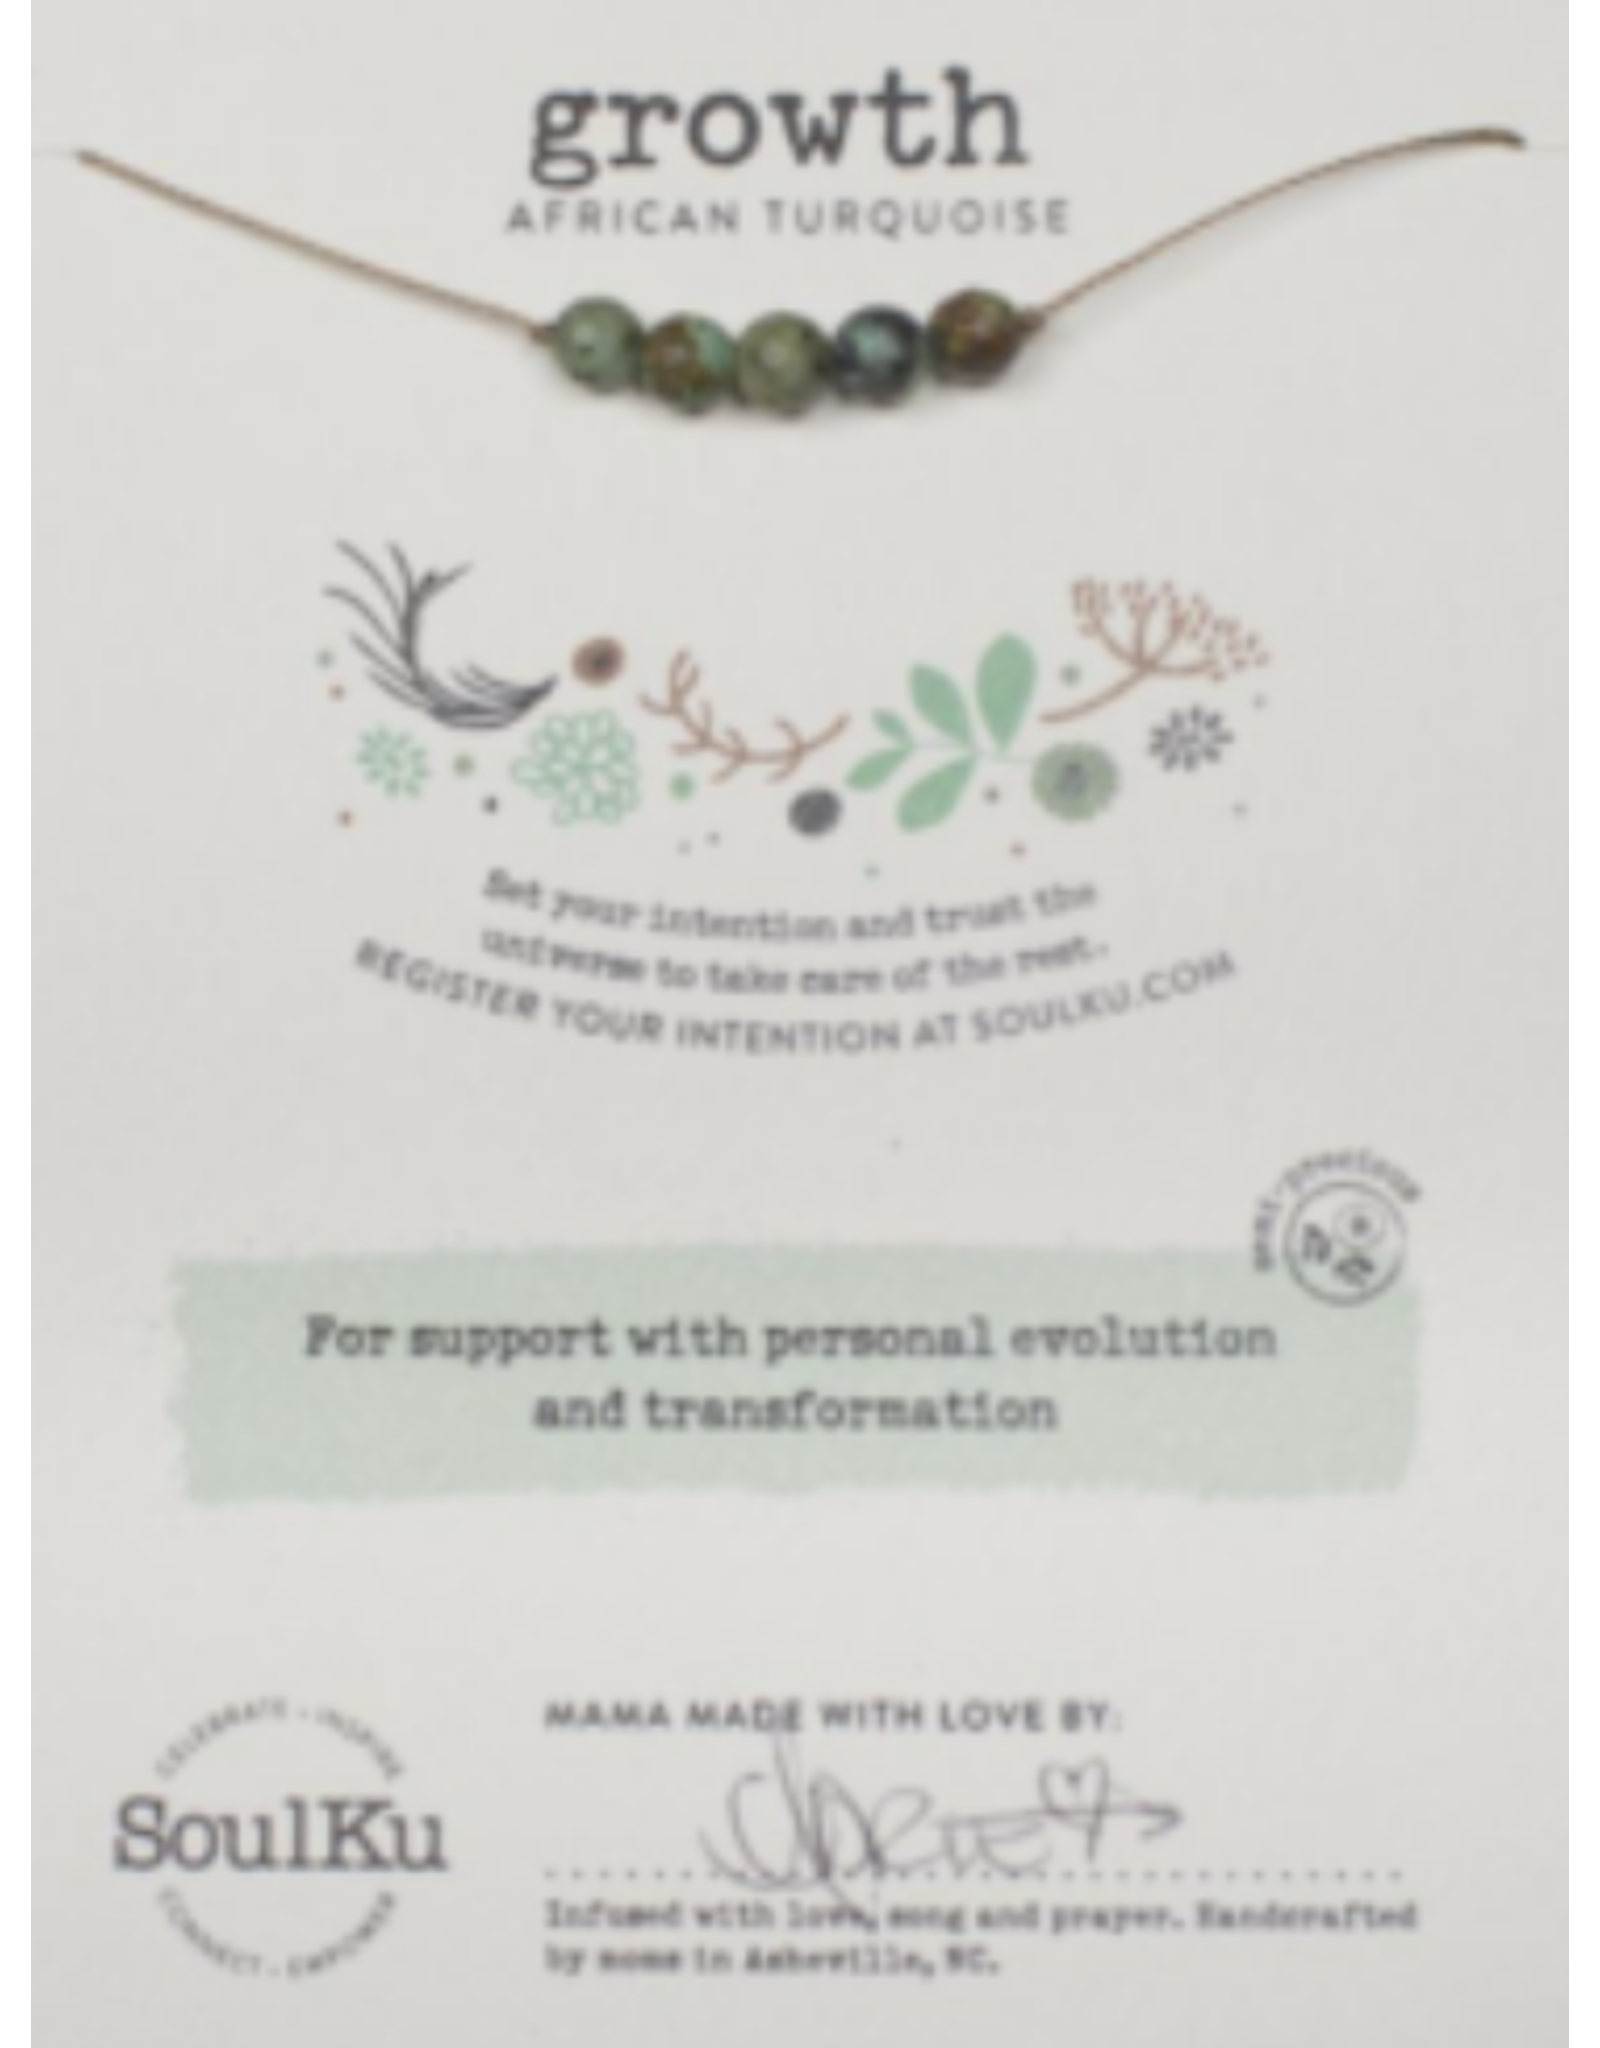 African Turquoise Intention Necklace for Growth -5 Beads SoulKu